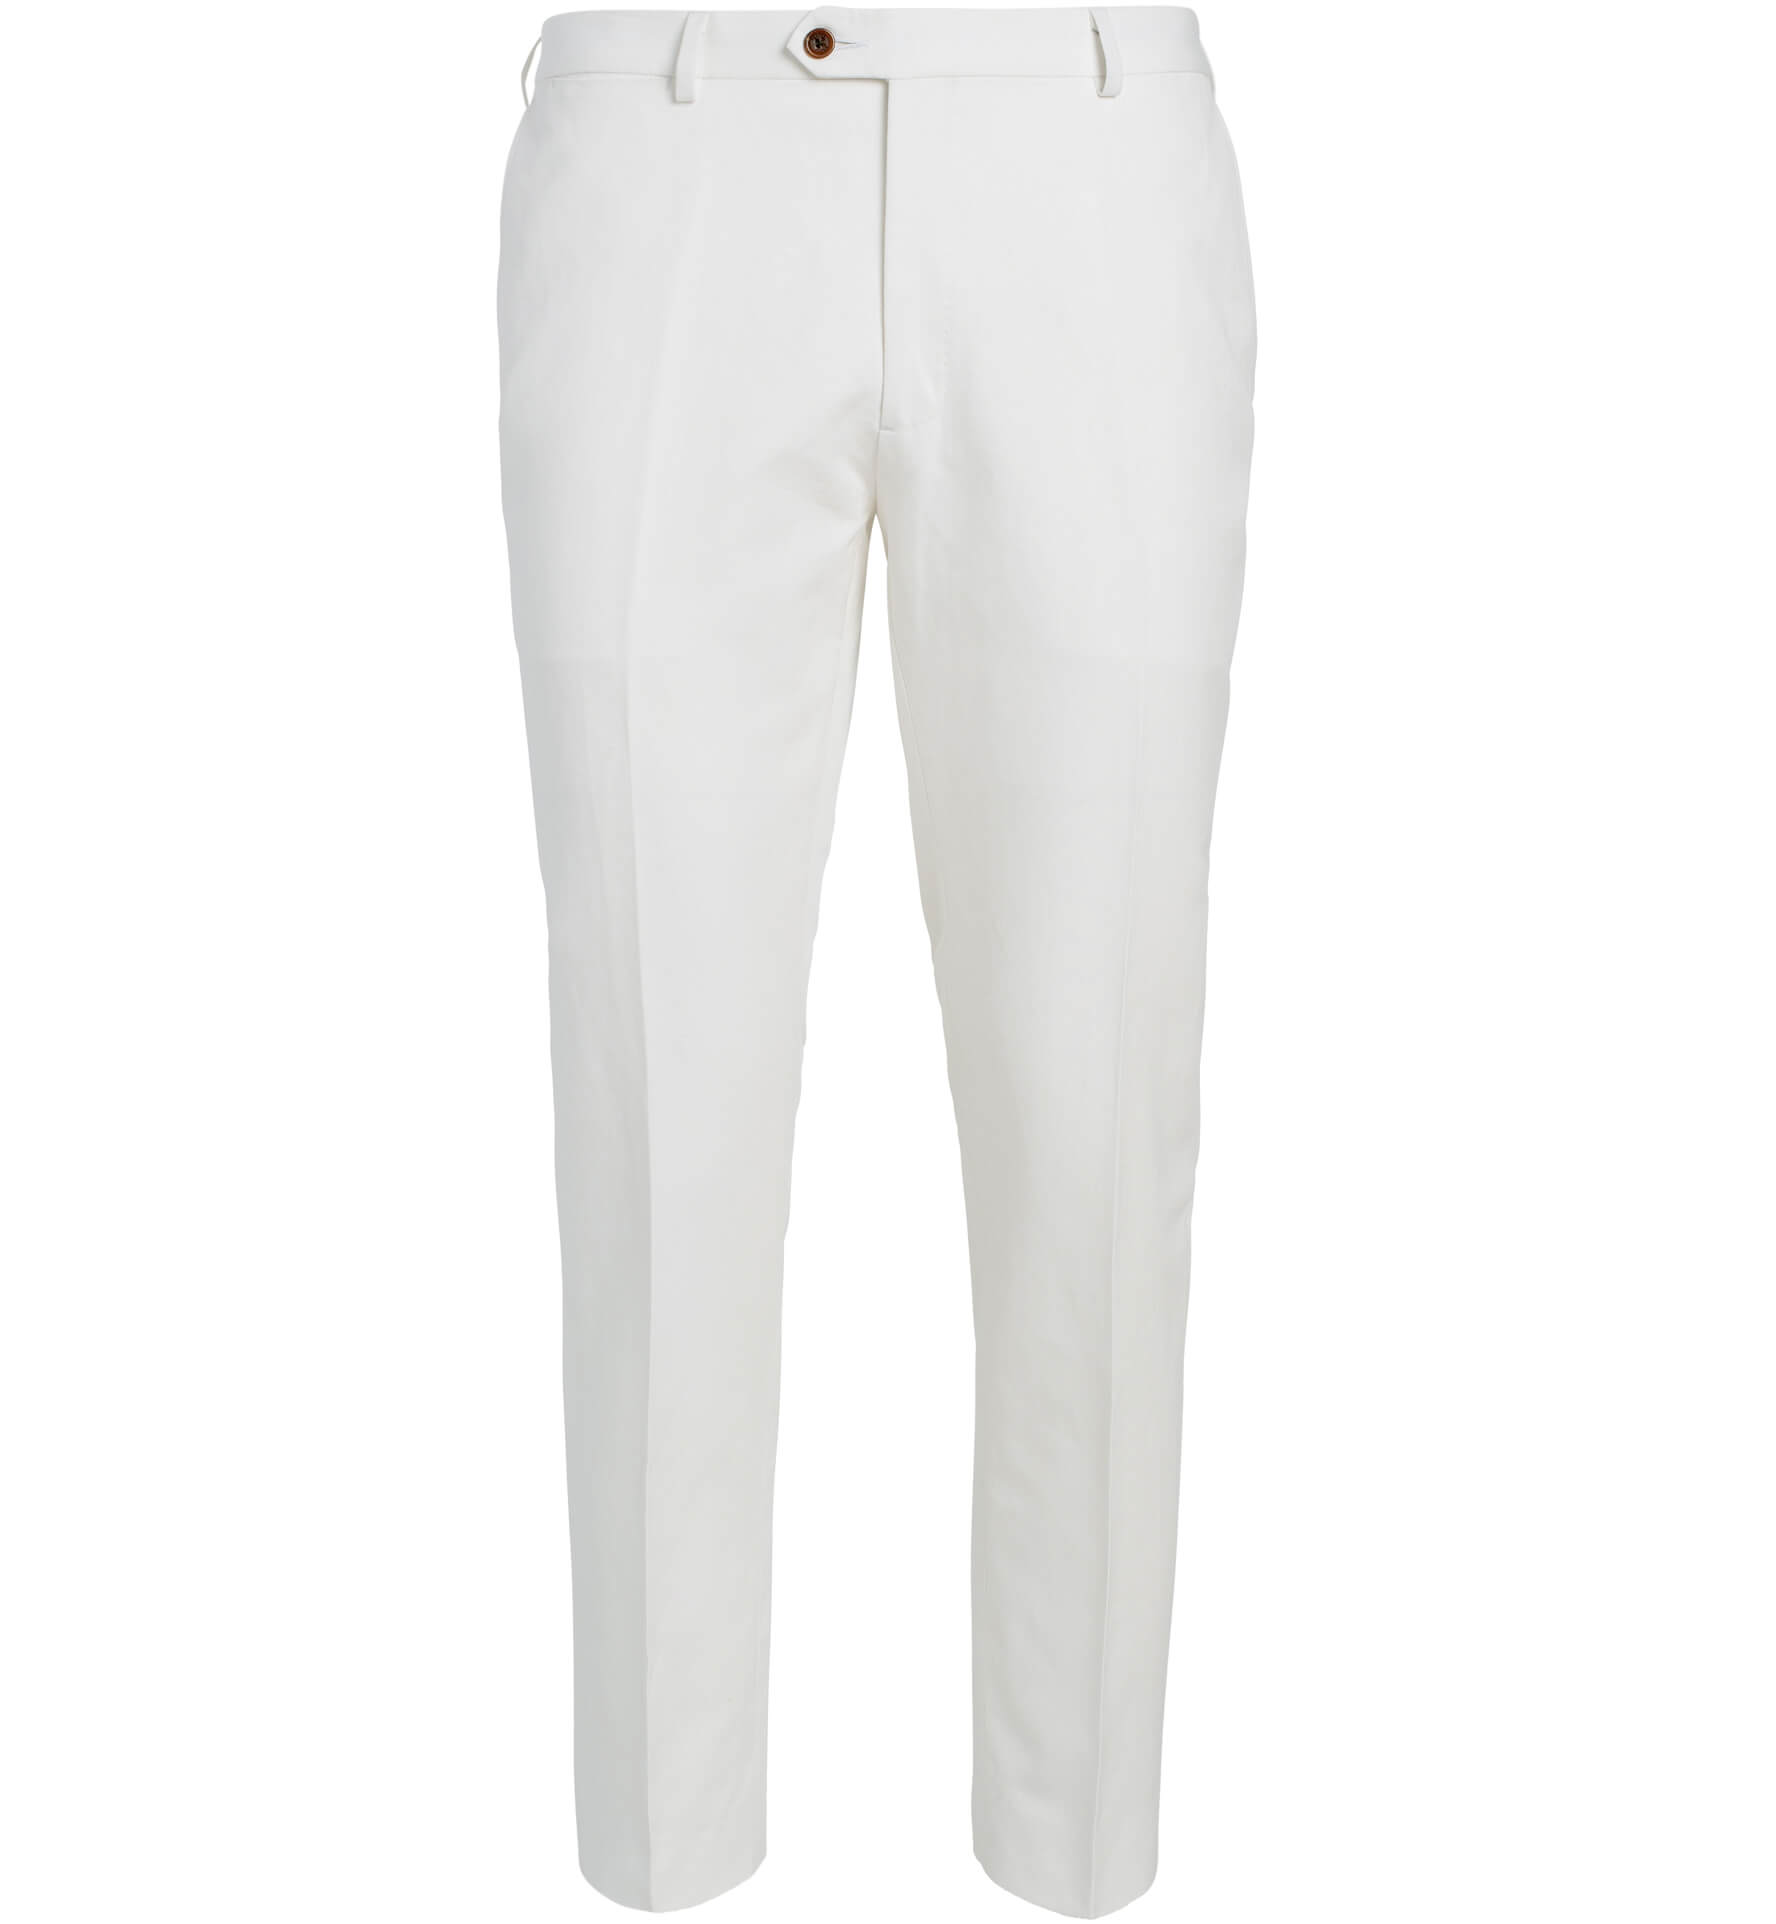 Zoom Image of Allen White Cotton and Linen Canvas Trouser